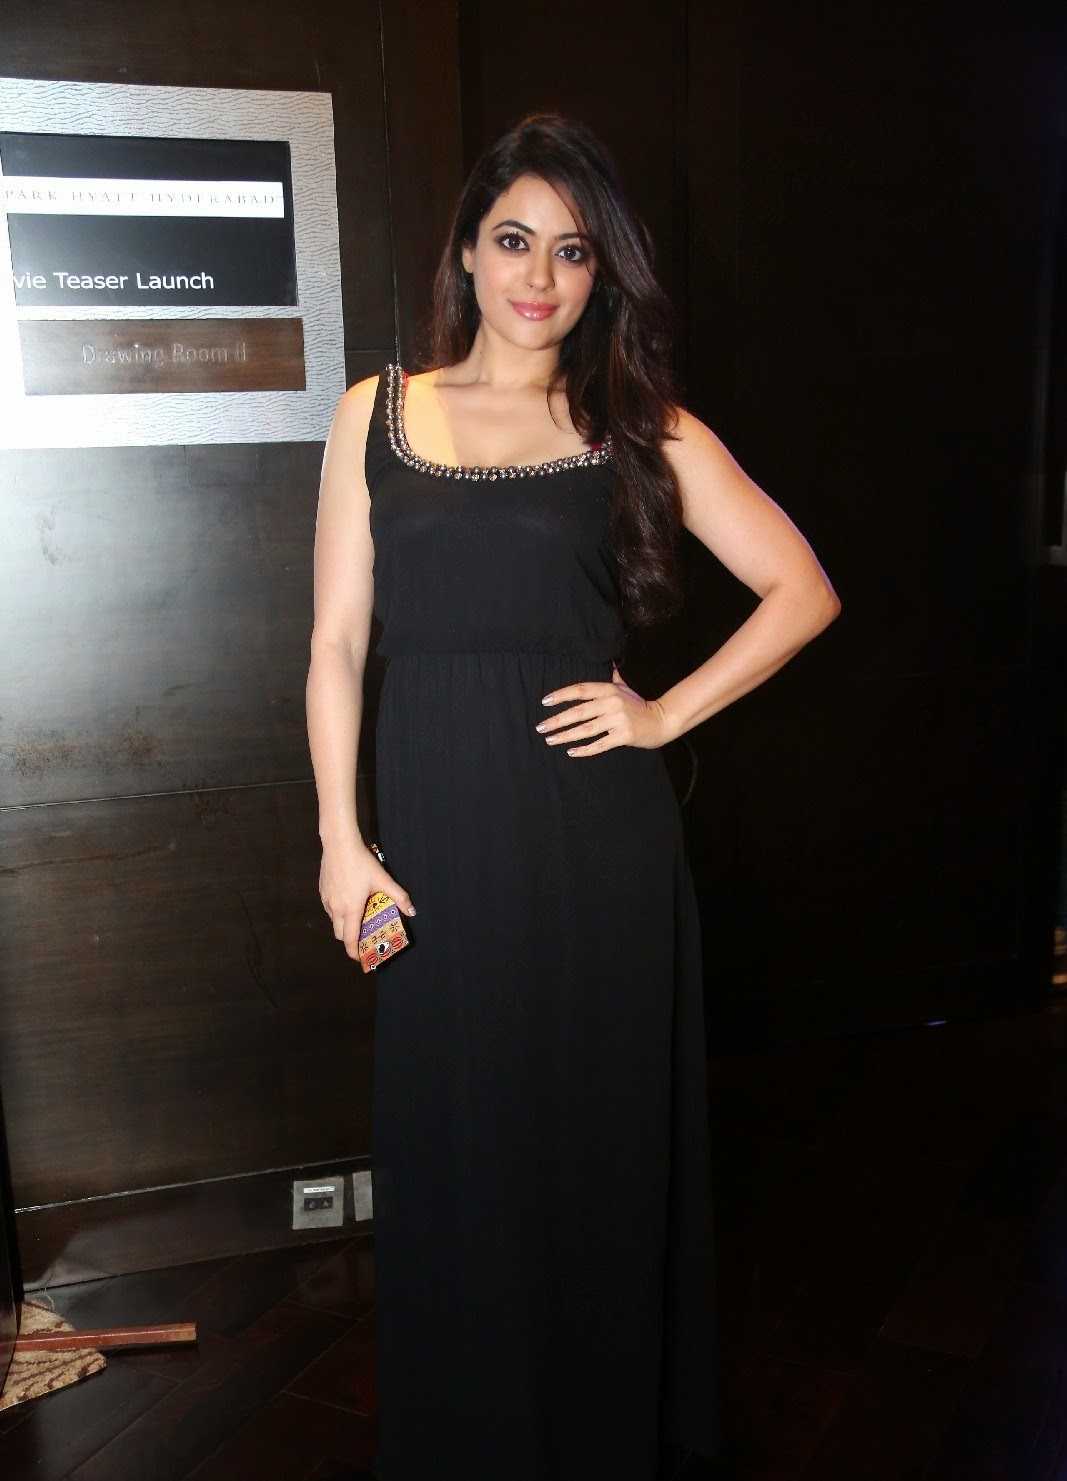 Shruti Sodhi Sexy Pictures In a Black Low Neck Top